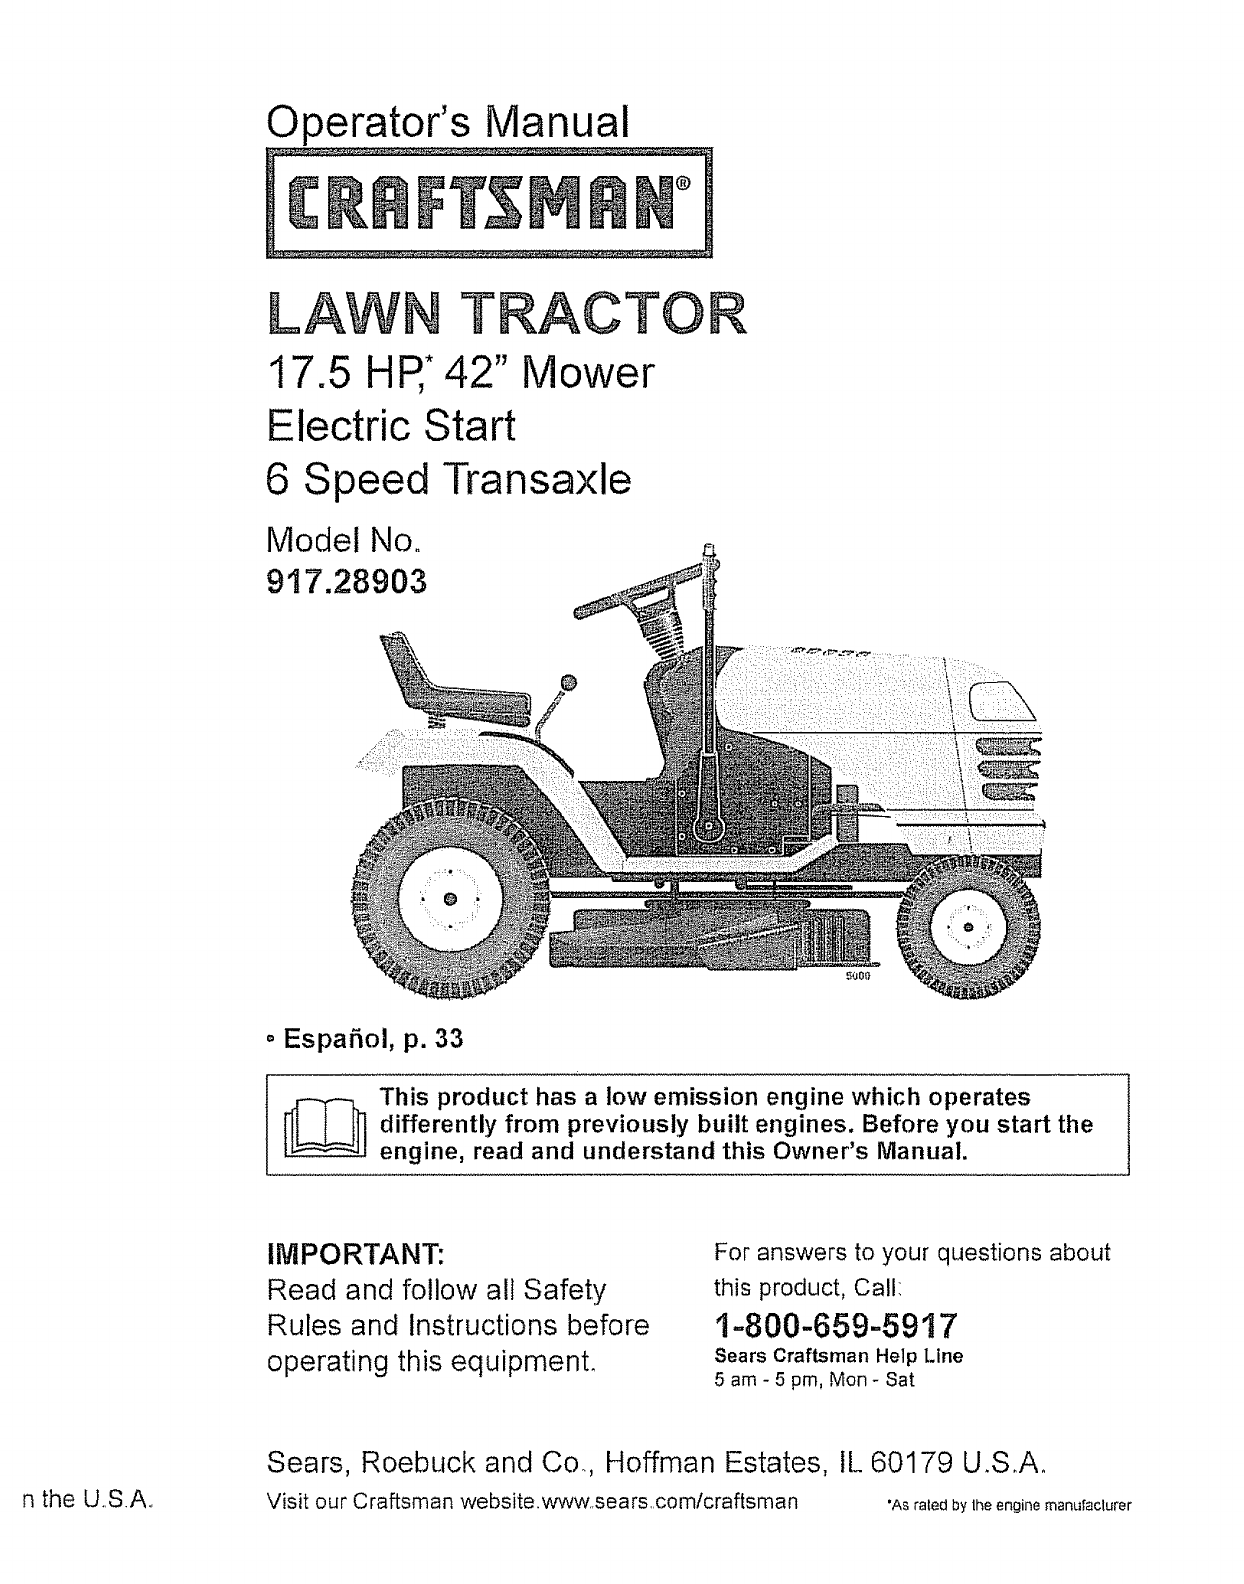 cb1648fd ba11 4ad4 80be 7014e24be2a7 bg1 craftsman riding lawn mower parts model 502254280 sears craftsman riding lawn mower lt1000 wiring diagram at gsmx.co